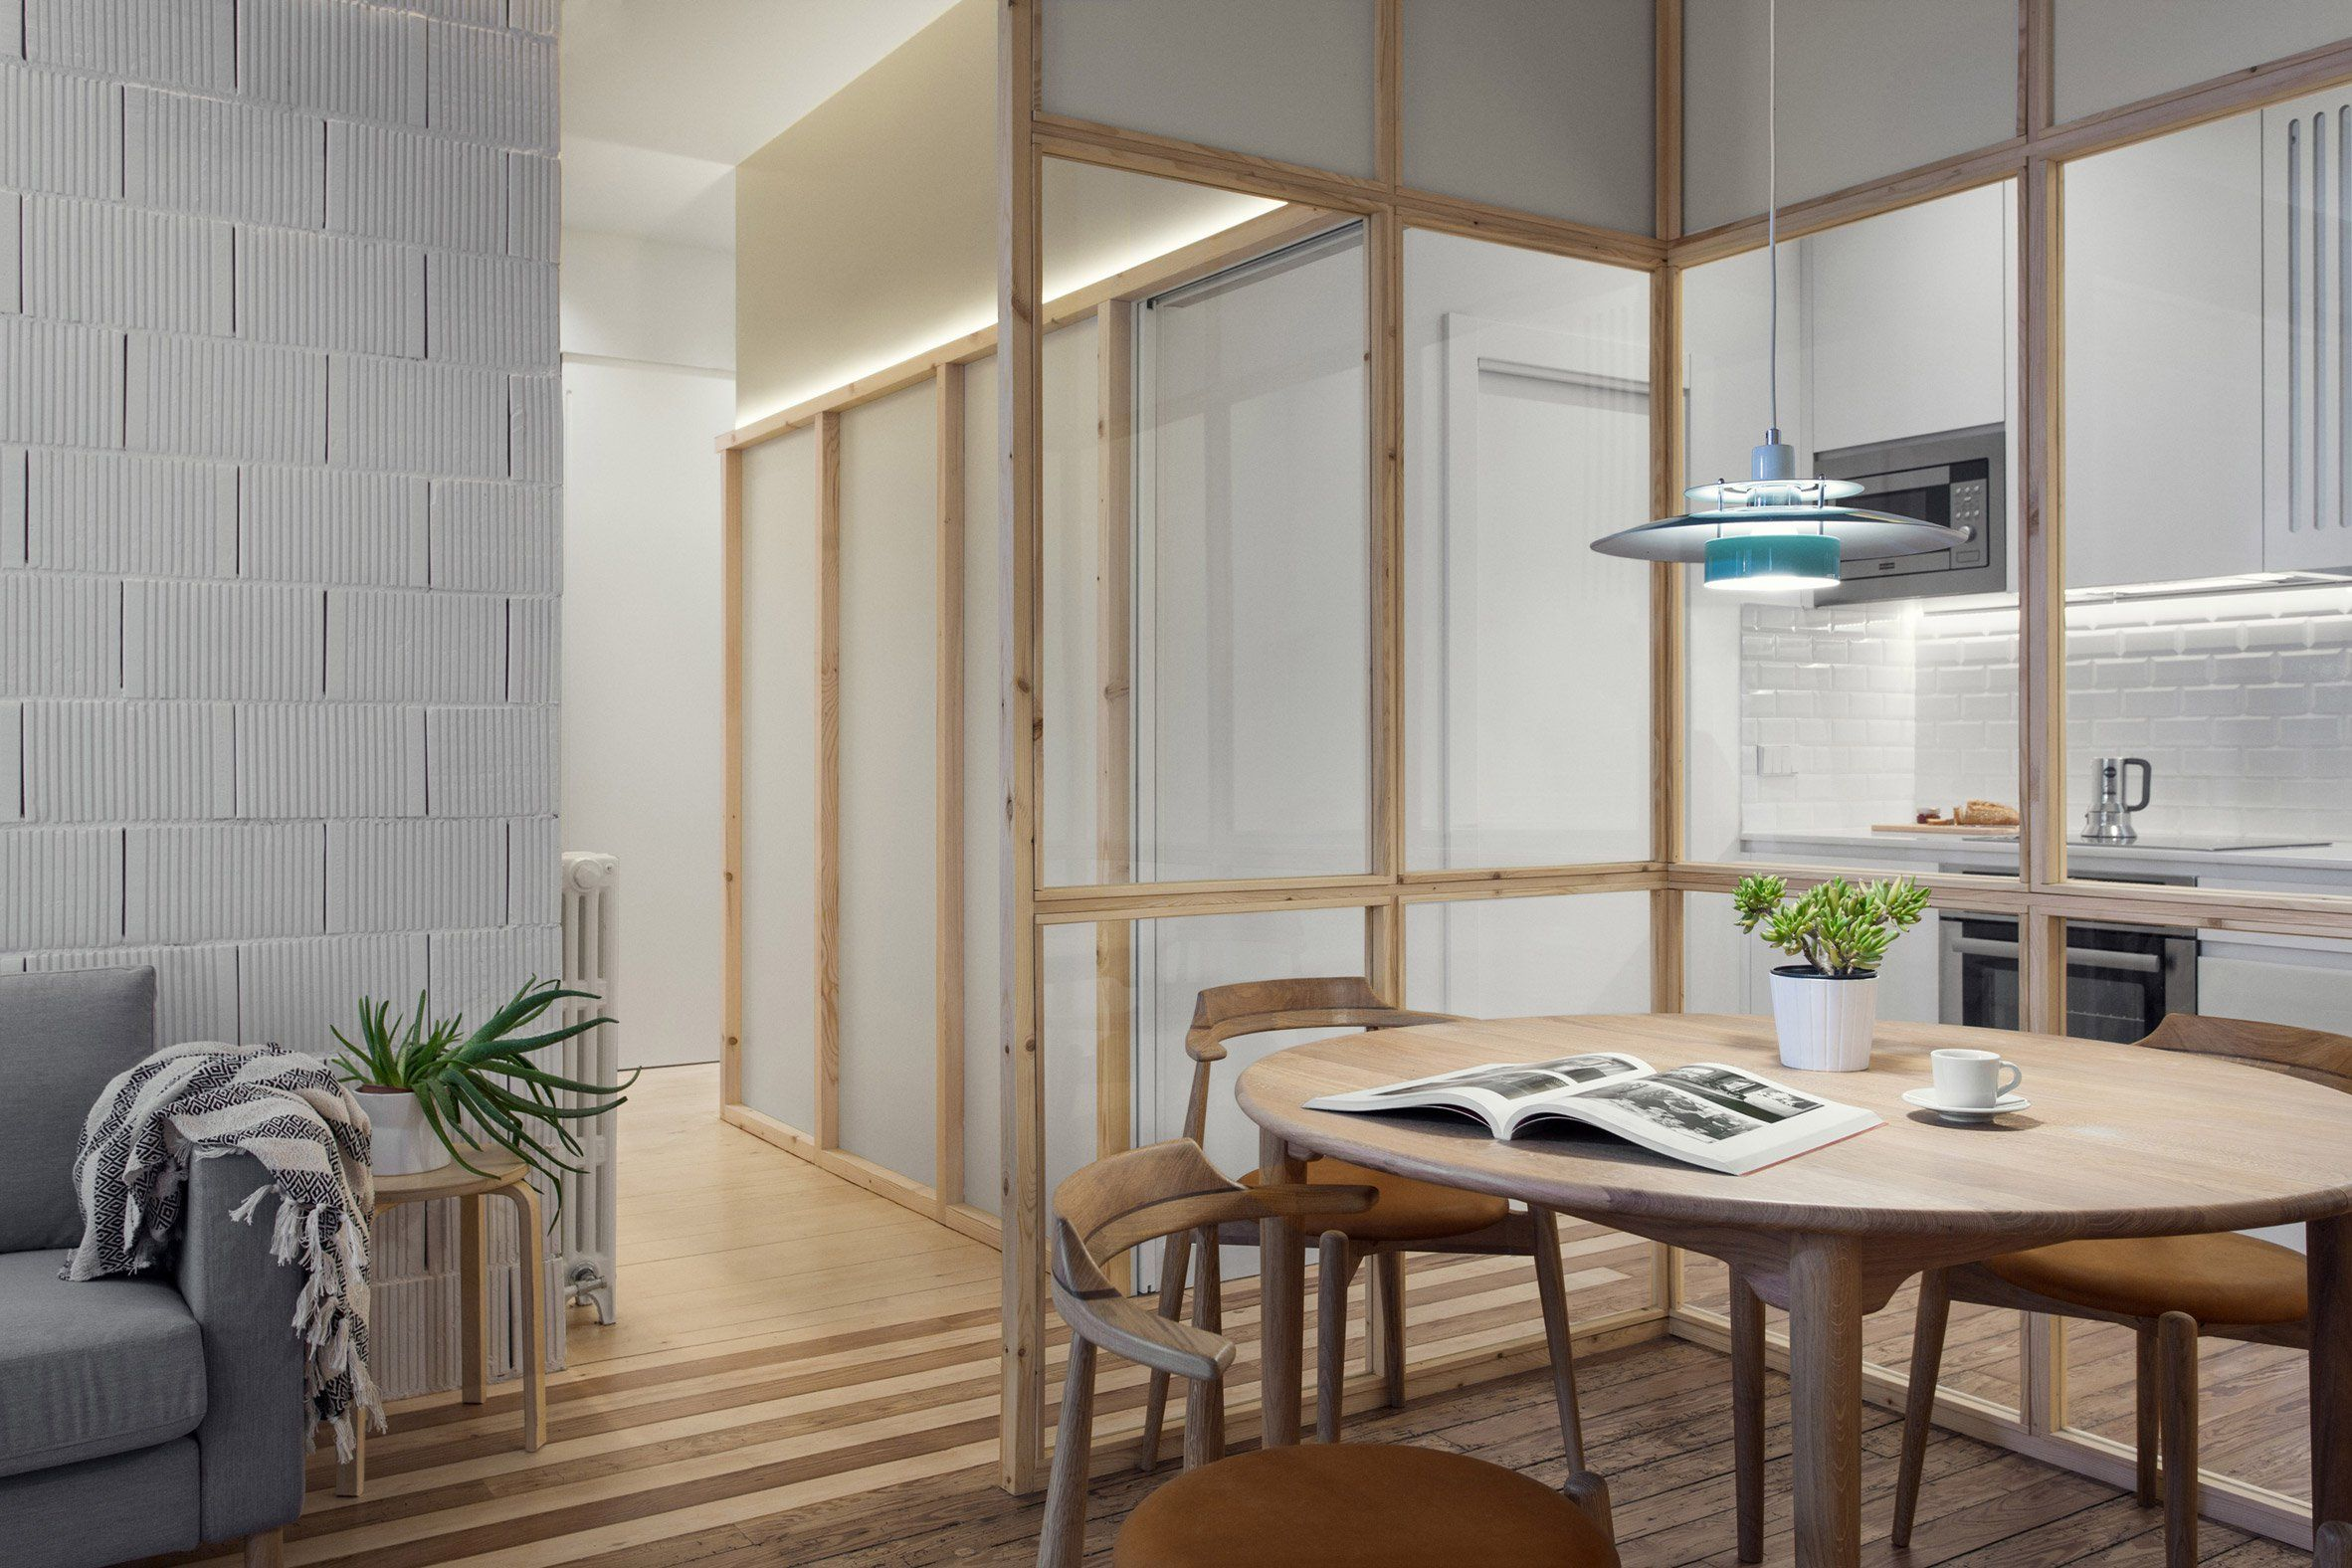 Concrete Girders And Glass Partition Walls Carve Up This Broken Plan Bilbao Apartment Glass Partition Wall Dezeen Interiors Apartment Renovation